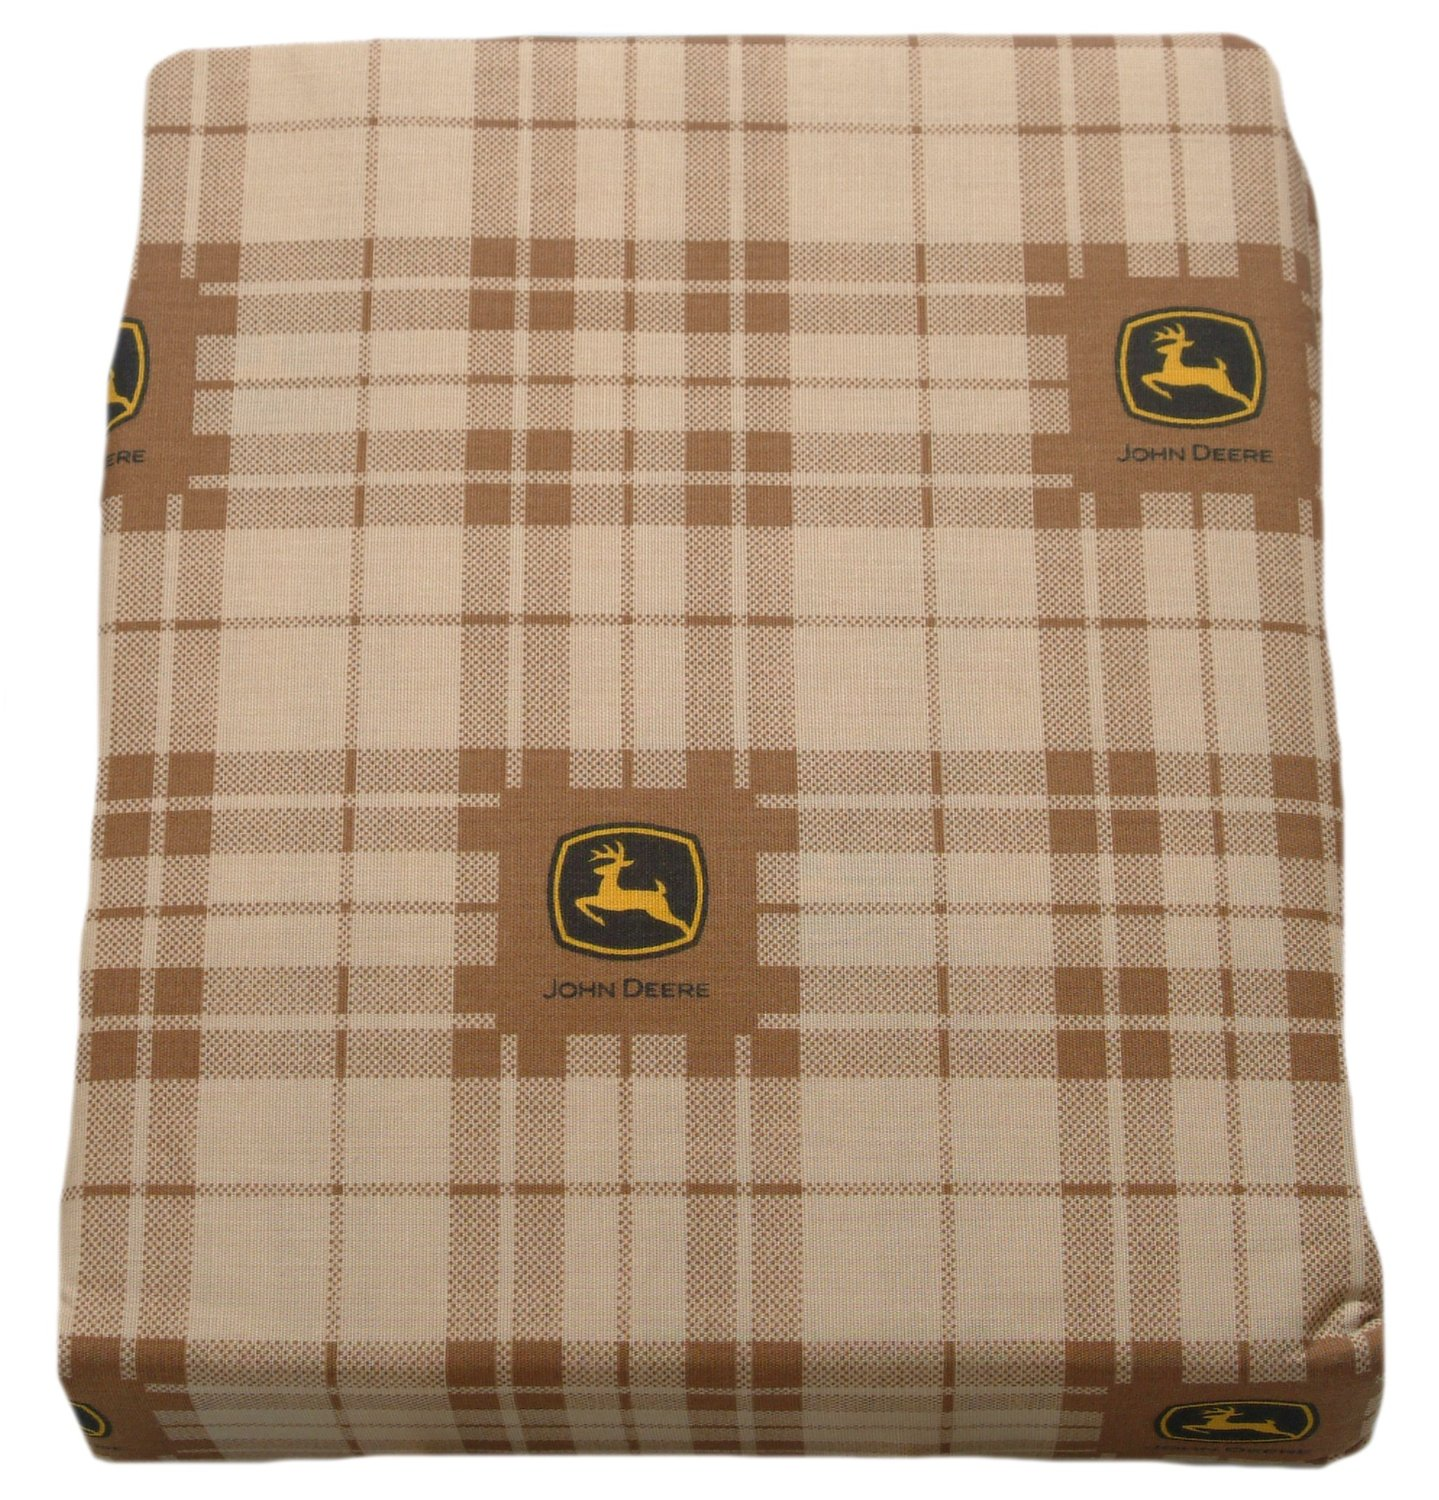 JOHN DEERE Bedding Traditional Tractor and Plaid Collection, 3-Piece Sheet Set, Twin Size